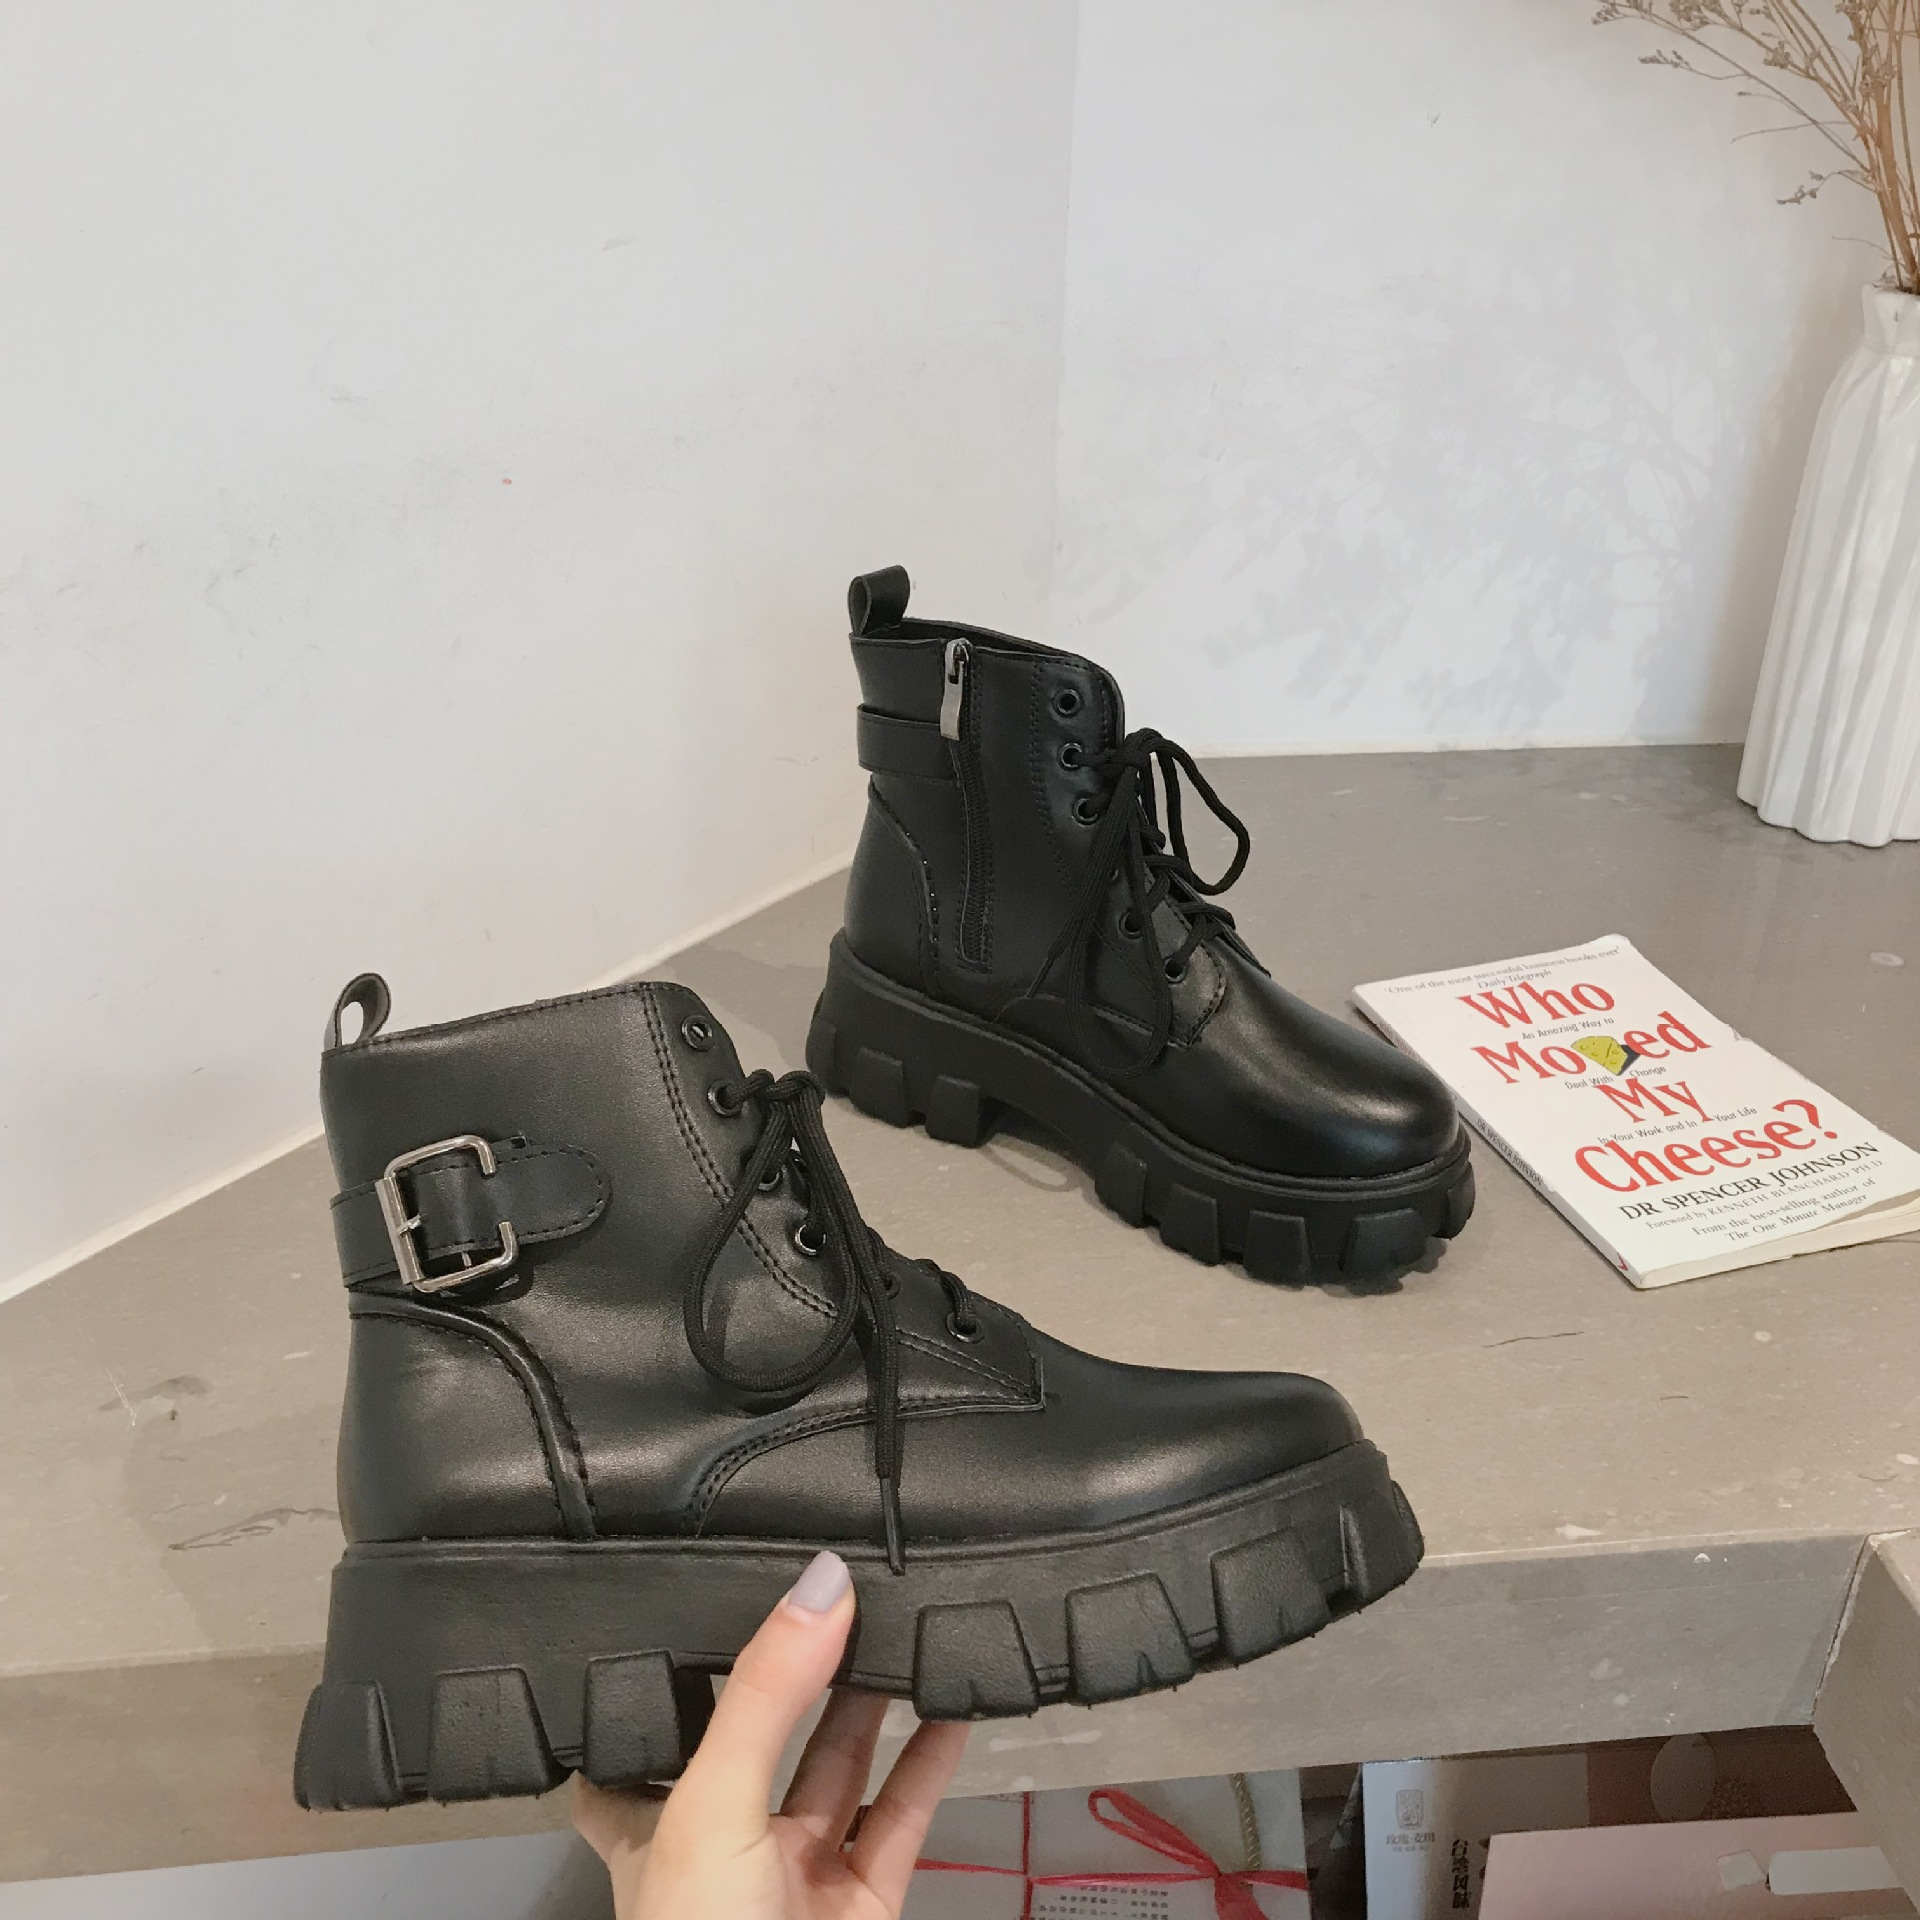 Casual Platform Shoes Women Matin Boots Cross-tied Brand Autumn Ladies Ankle Boots Front Zipper Female botas mujer Black Shoes